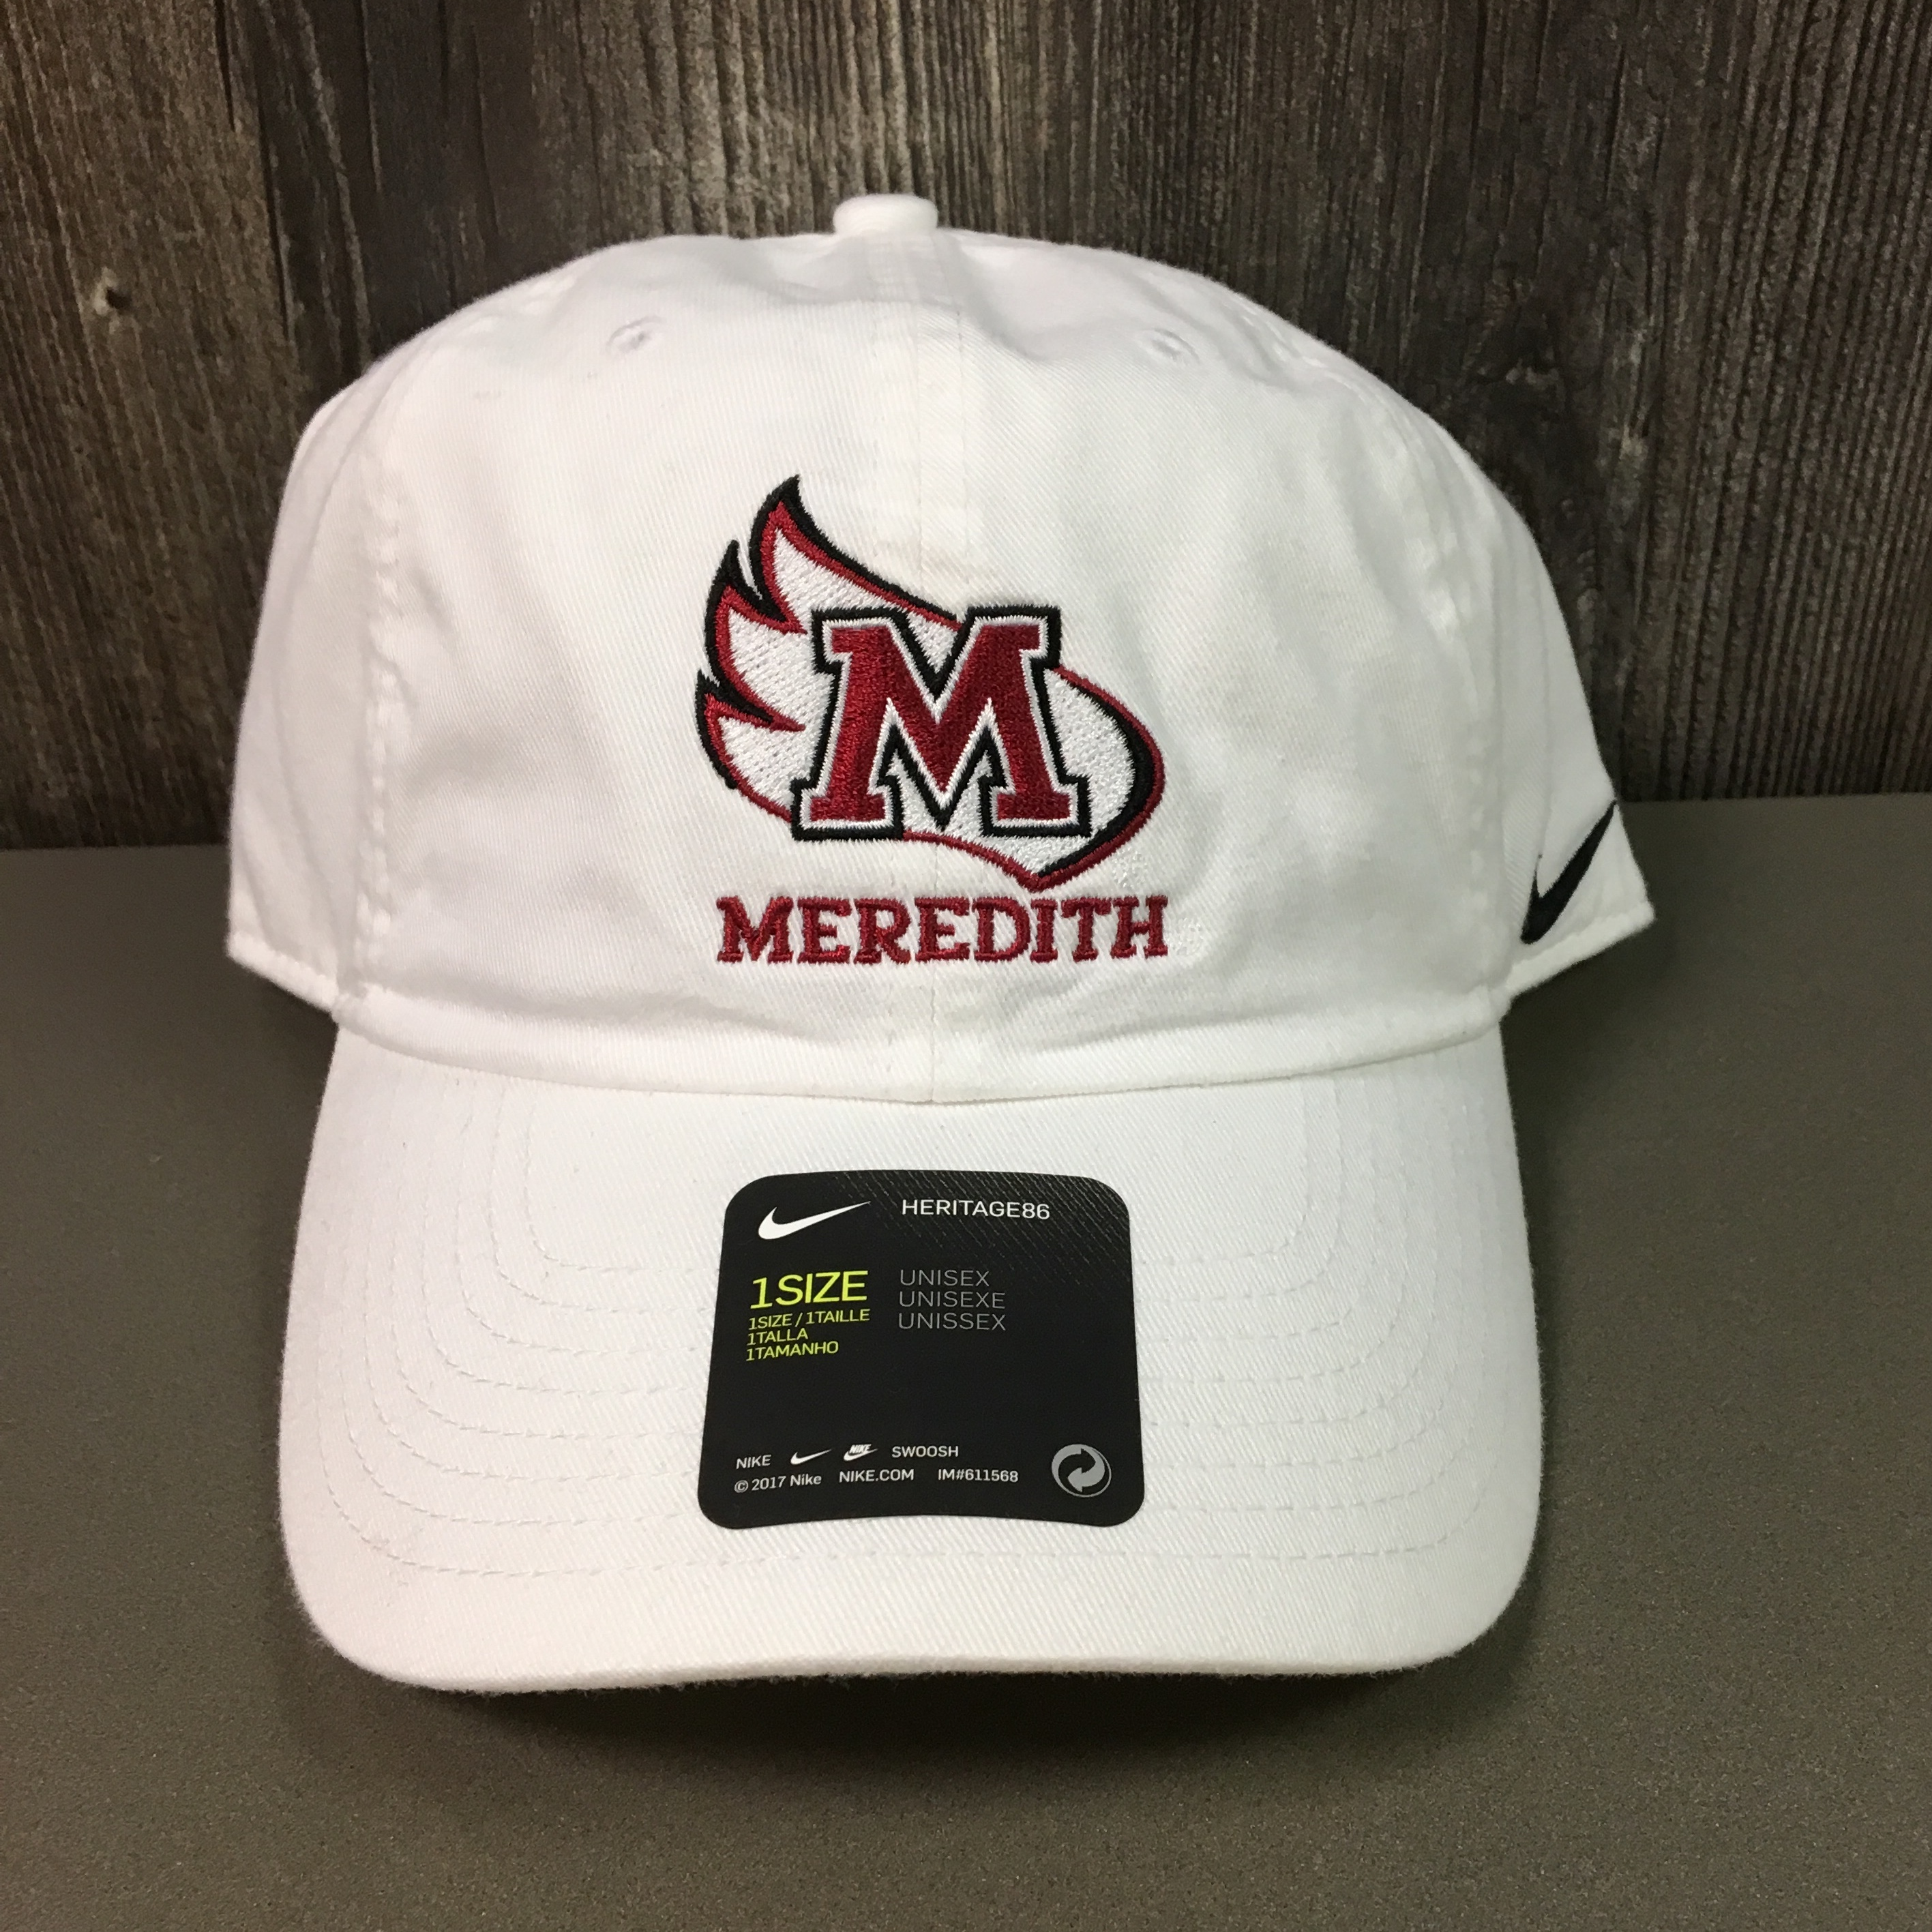 Image for the Nike Men's Campus Hat, White, M-Wing Meredith product